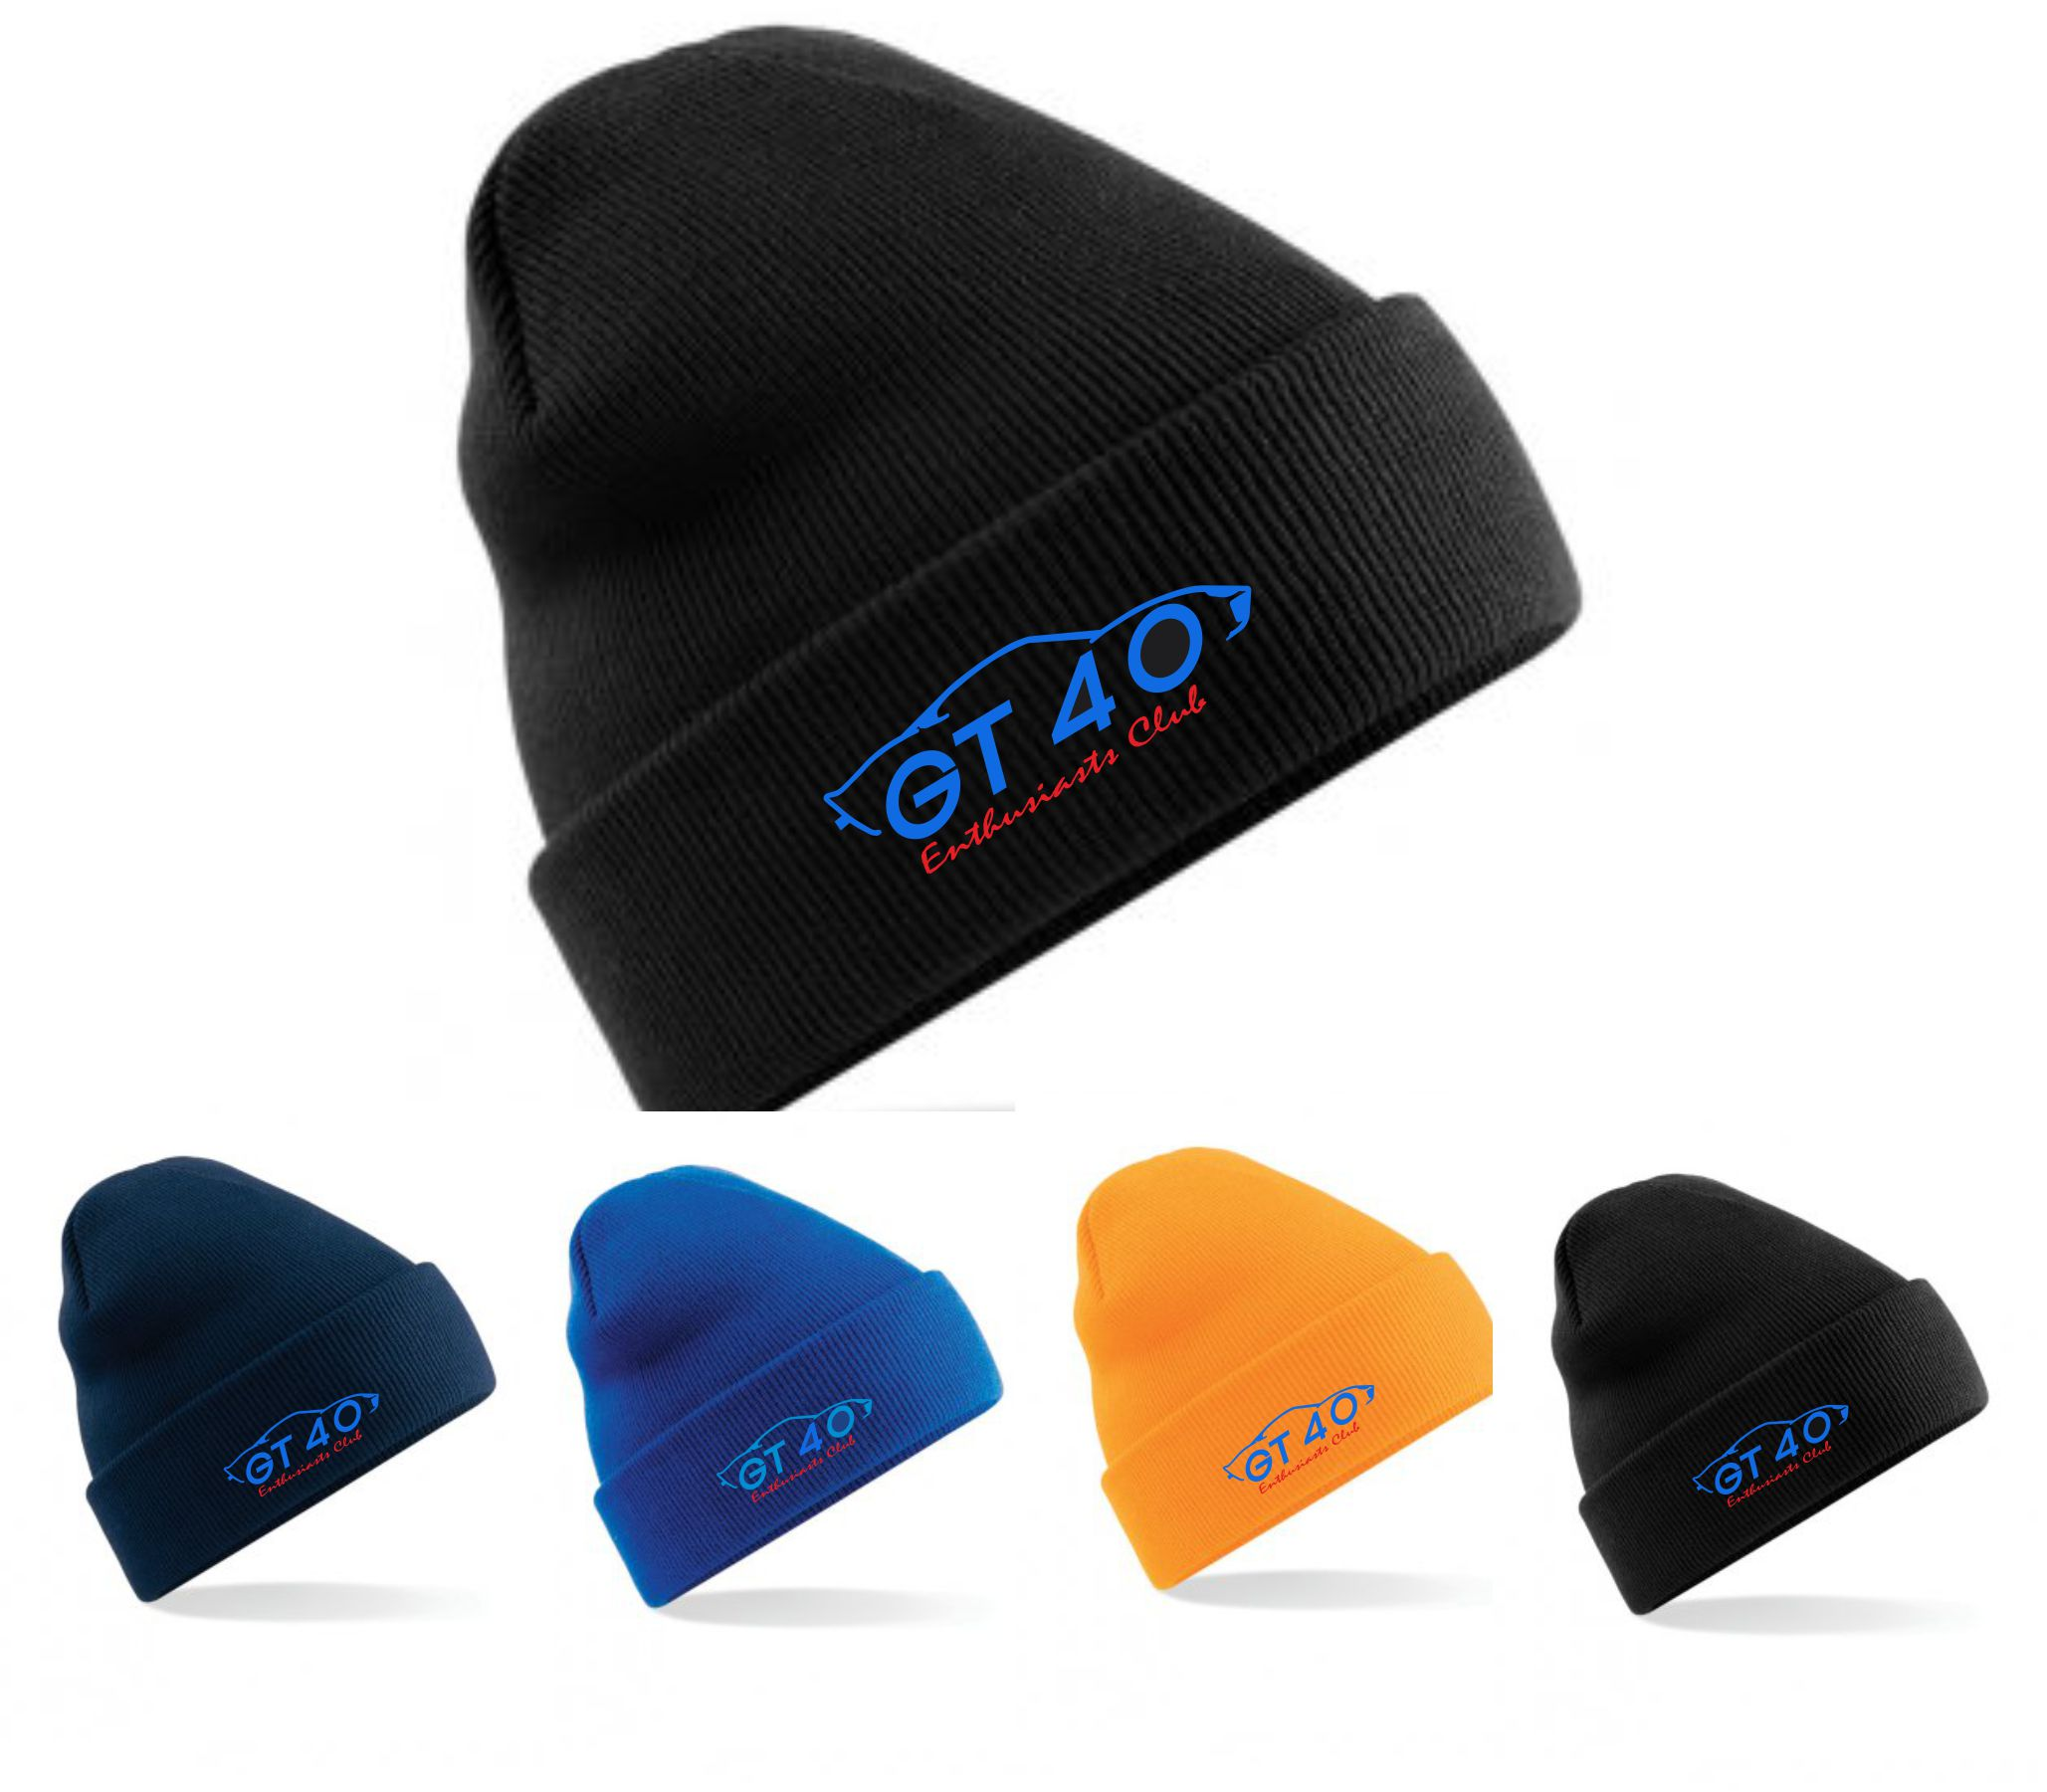 GT40 Enthusiasts Beanie Hat